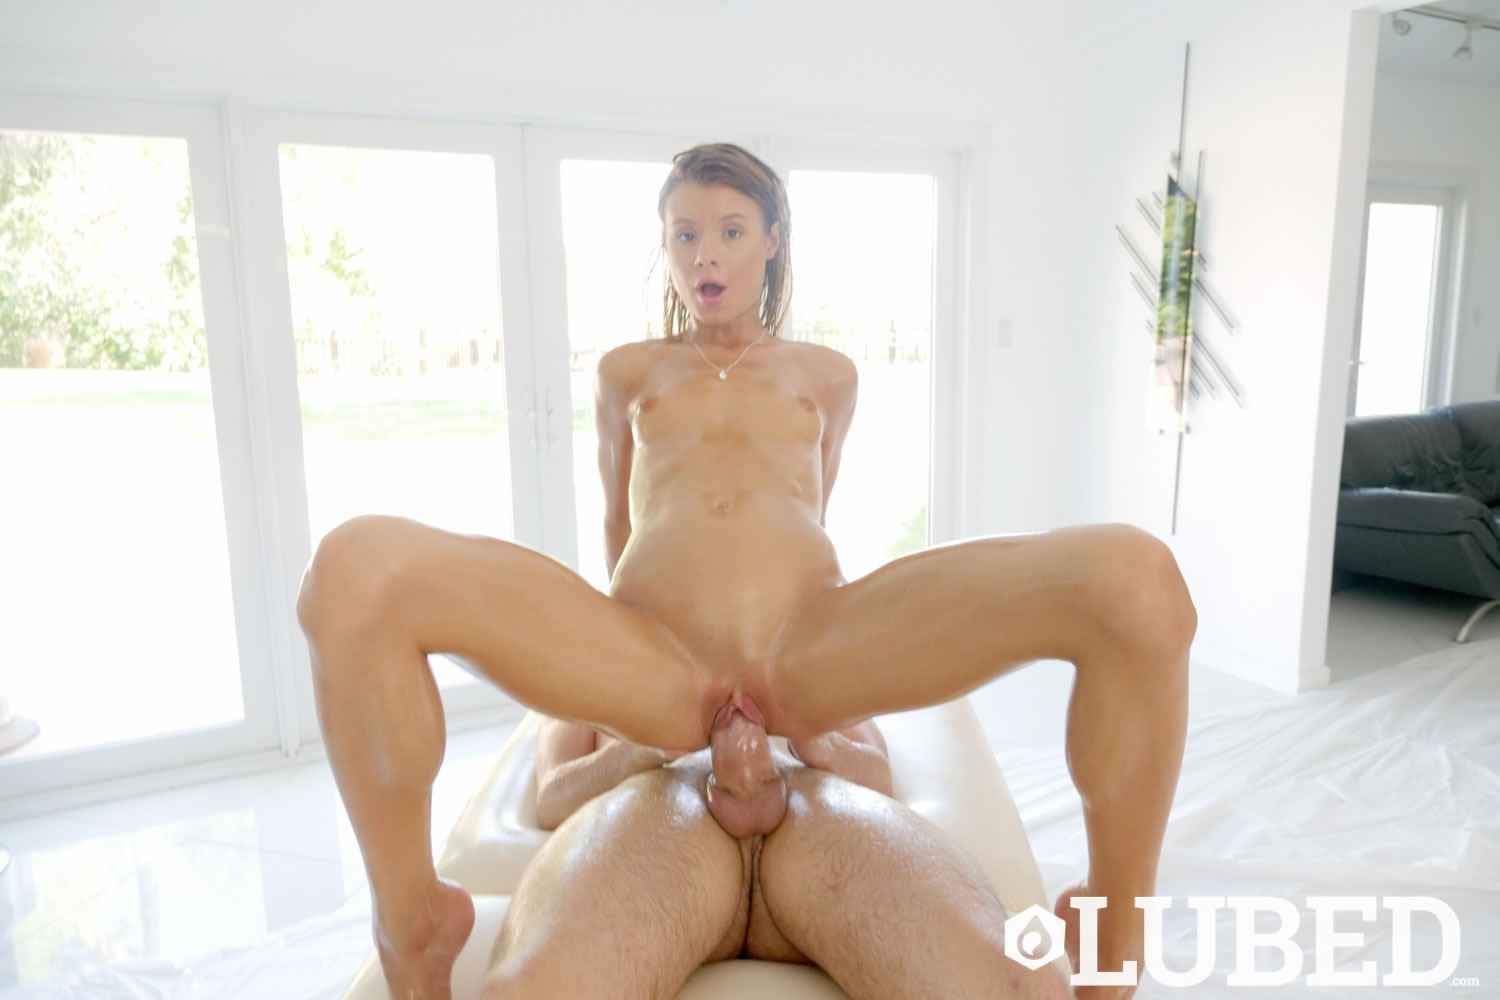 Asuna Fox Slick CumFacial - Fine Hotties - Hot Naked Girls ...